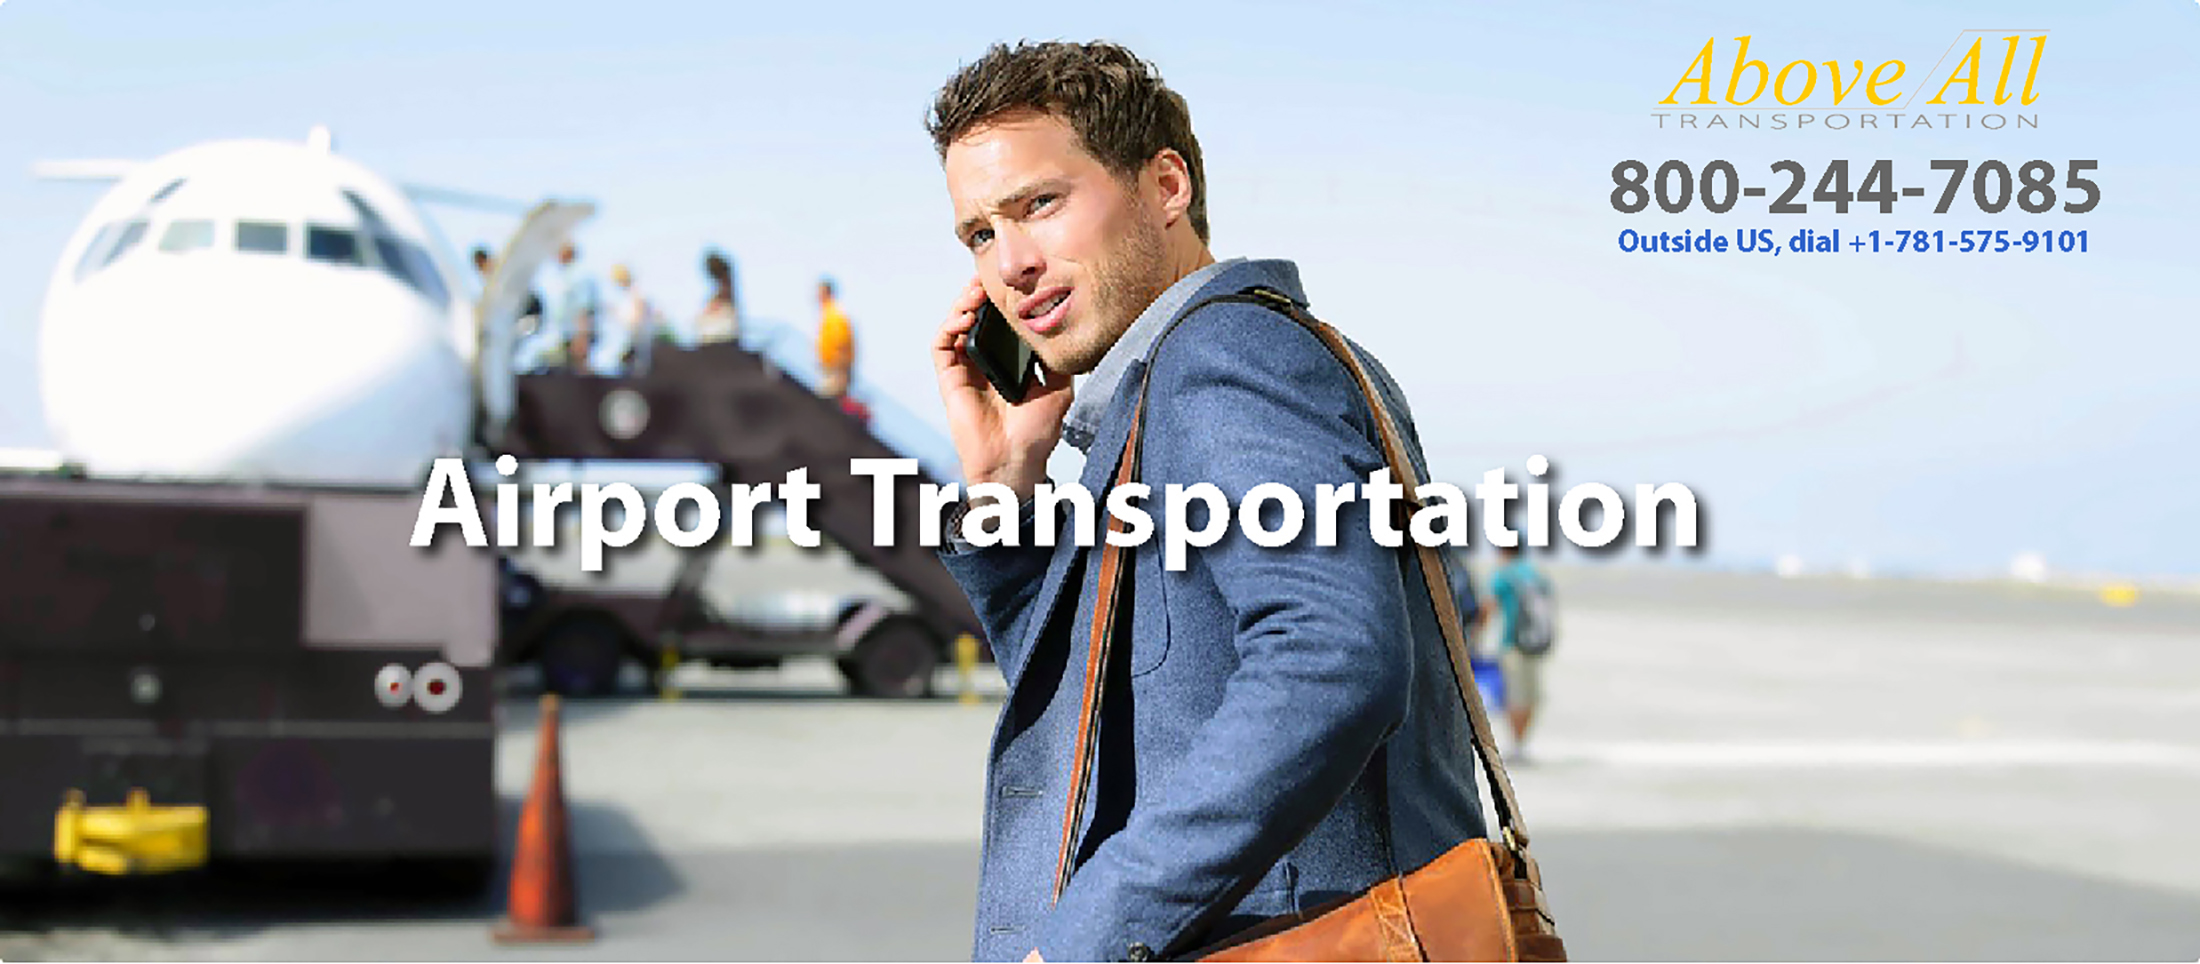 Hero-Above All Transportation - Airport Services